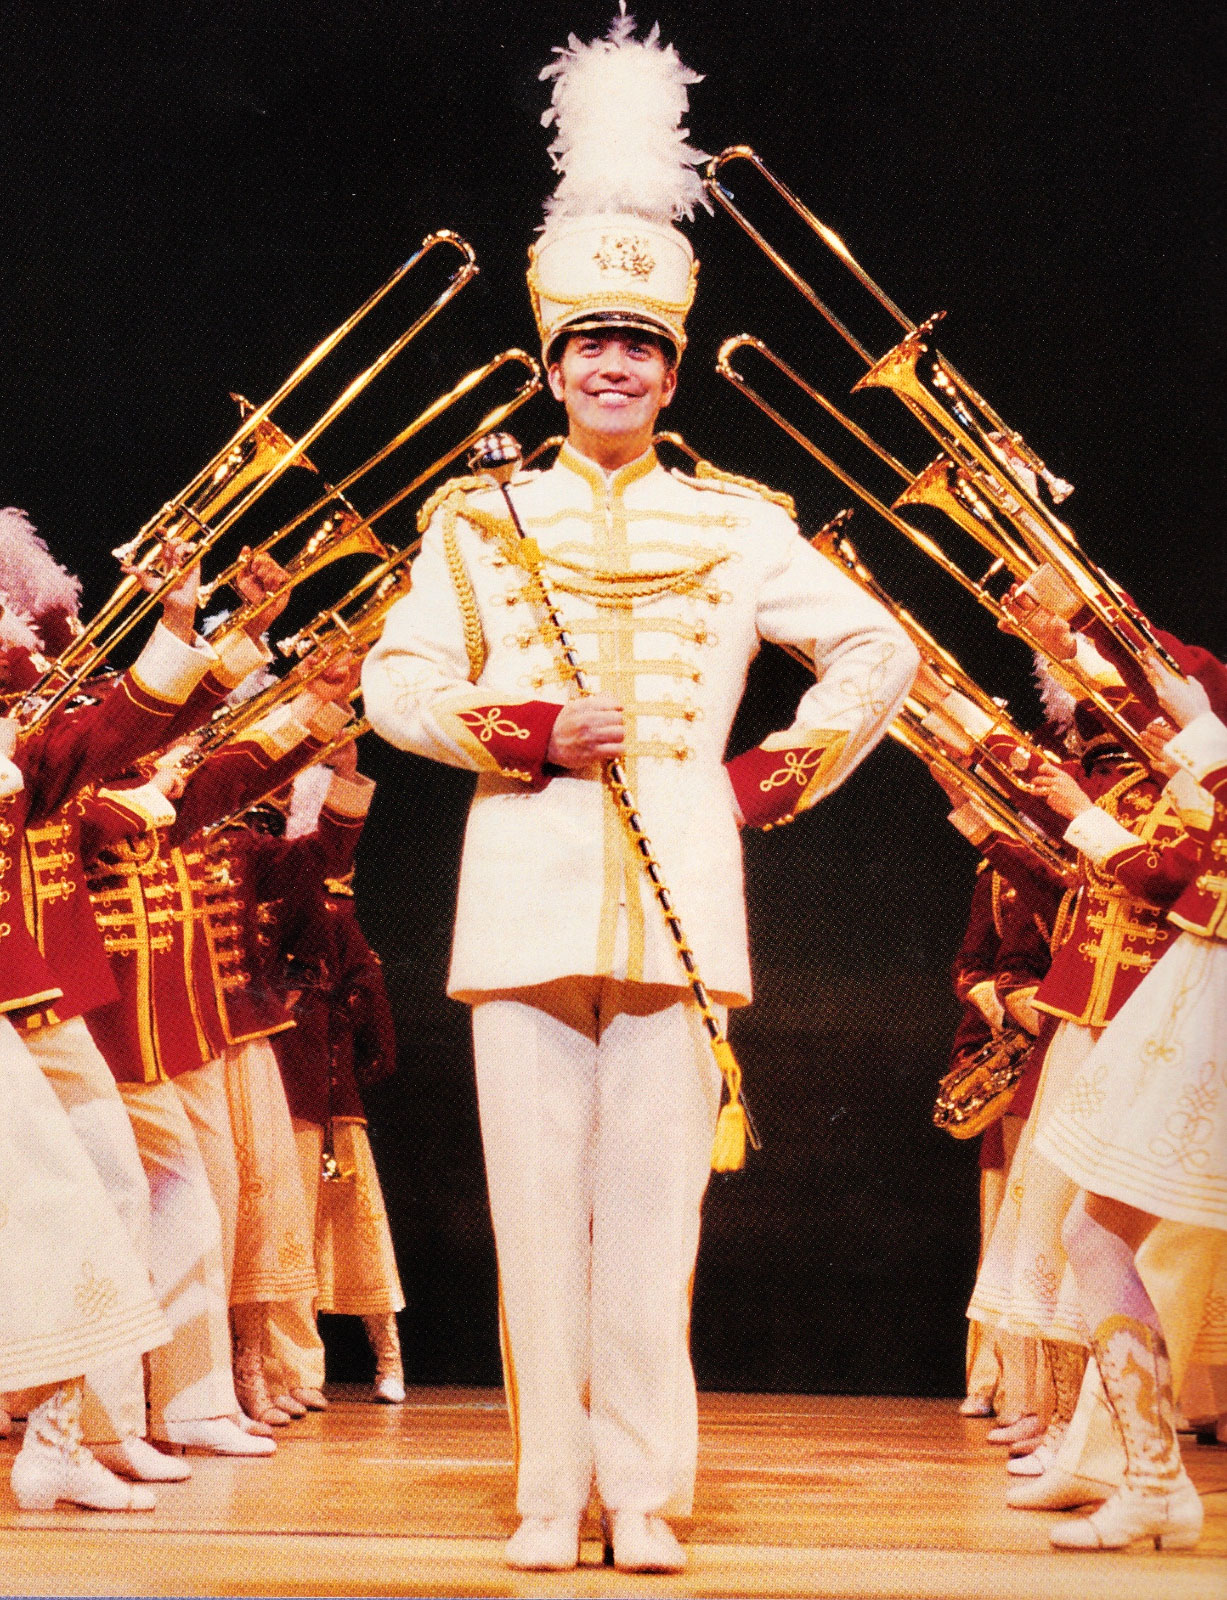 """Harold Hill (Craig Bierko)performing in the """"Finale Ultimo"""" framed by the ensemble playing trombones. Harold Hill is dressed appropriately in a drum major suit and the ensemble playing the trombone are dressed in a bright red band uniforms."""